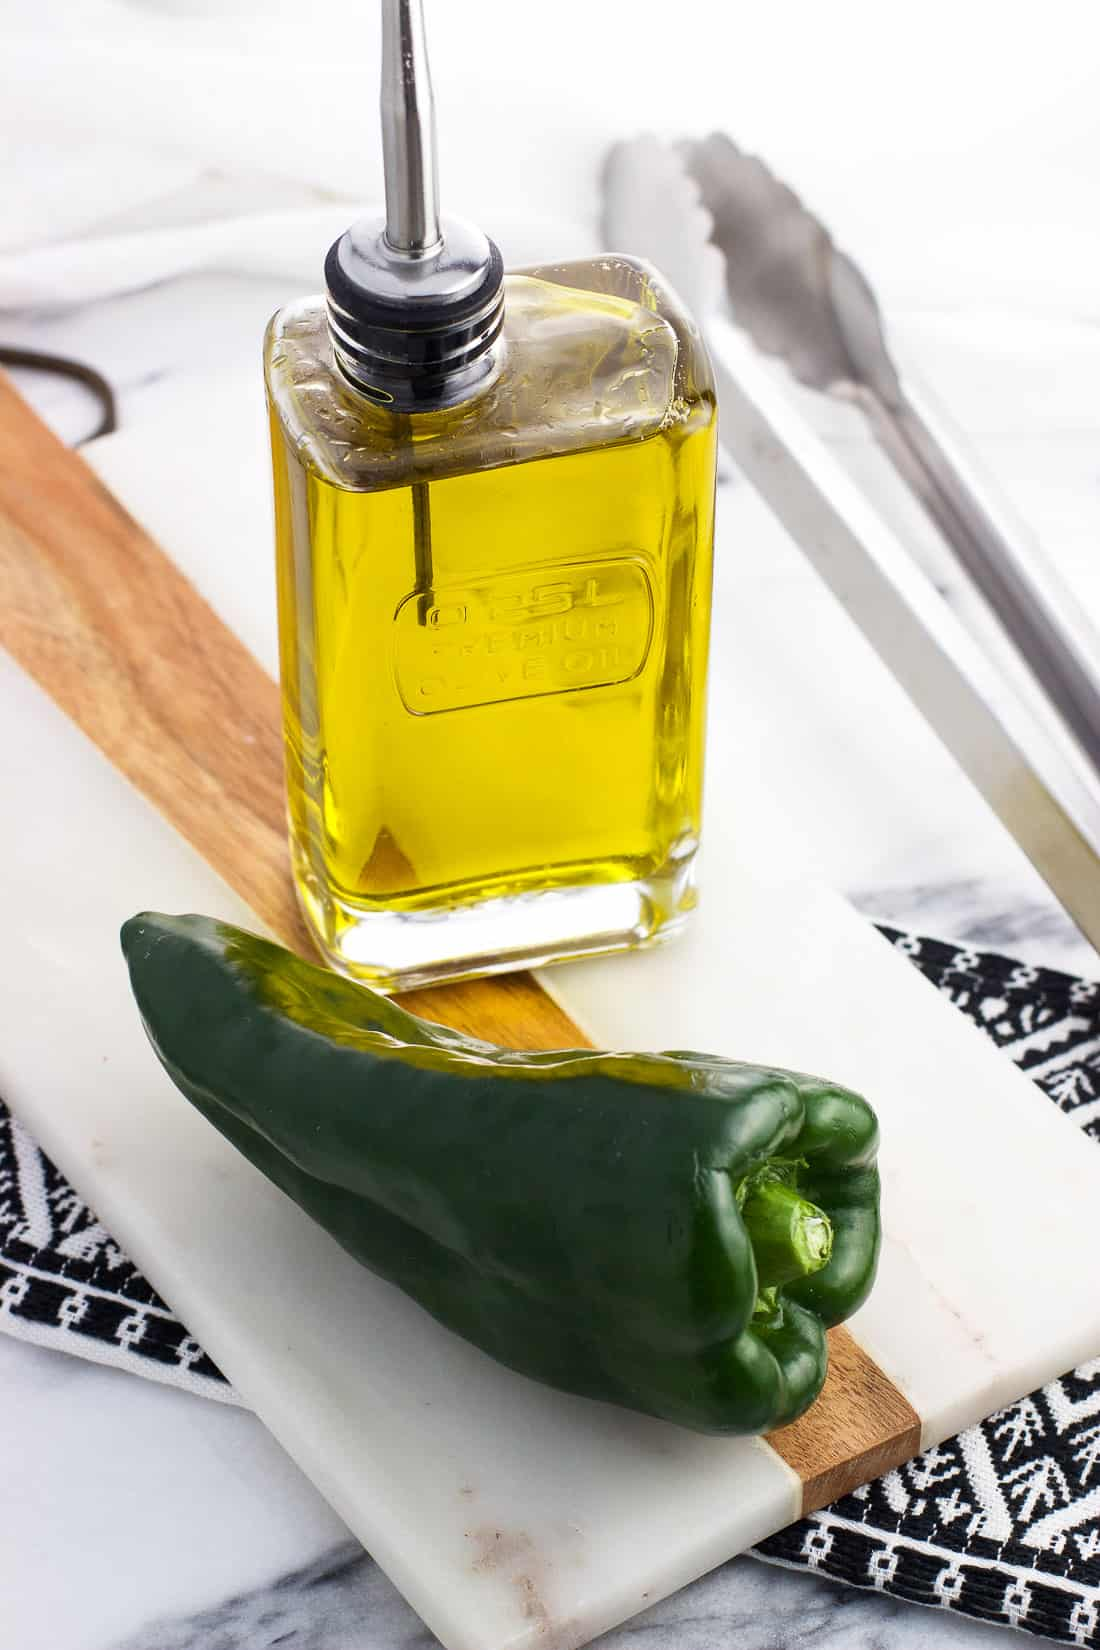 Learn how to roast poblano peppers in the oven (psst -- it's not hard!). Just a little bit of olive oil and a baking sheet are all you need to make roasted peppers year-round and in any kind of stove. These are so great in tacos and on sandwiches!